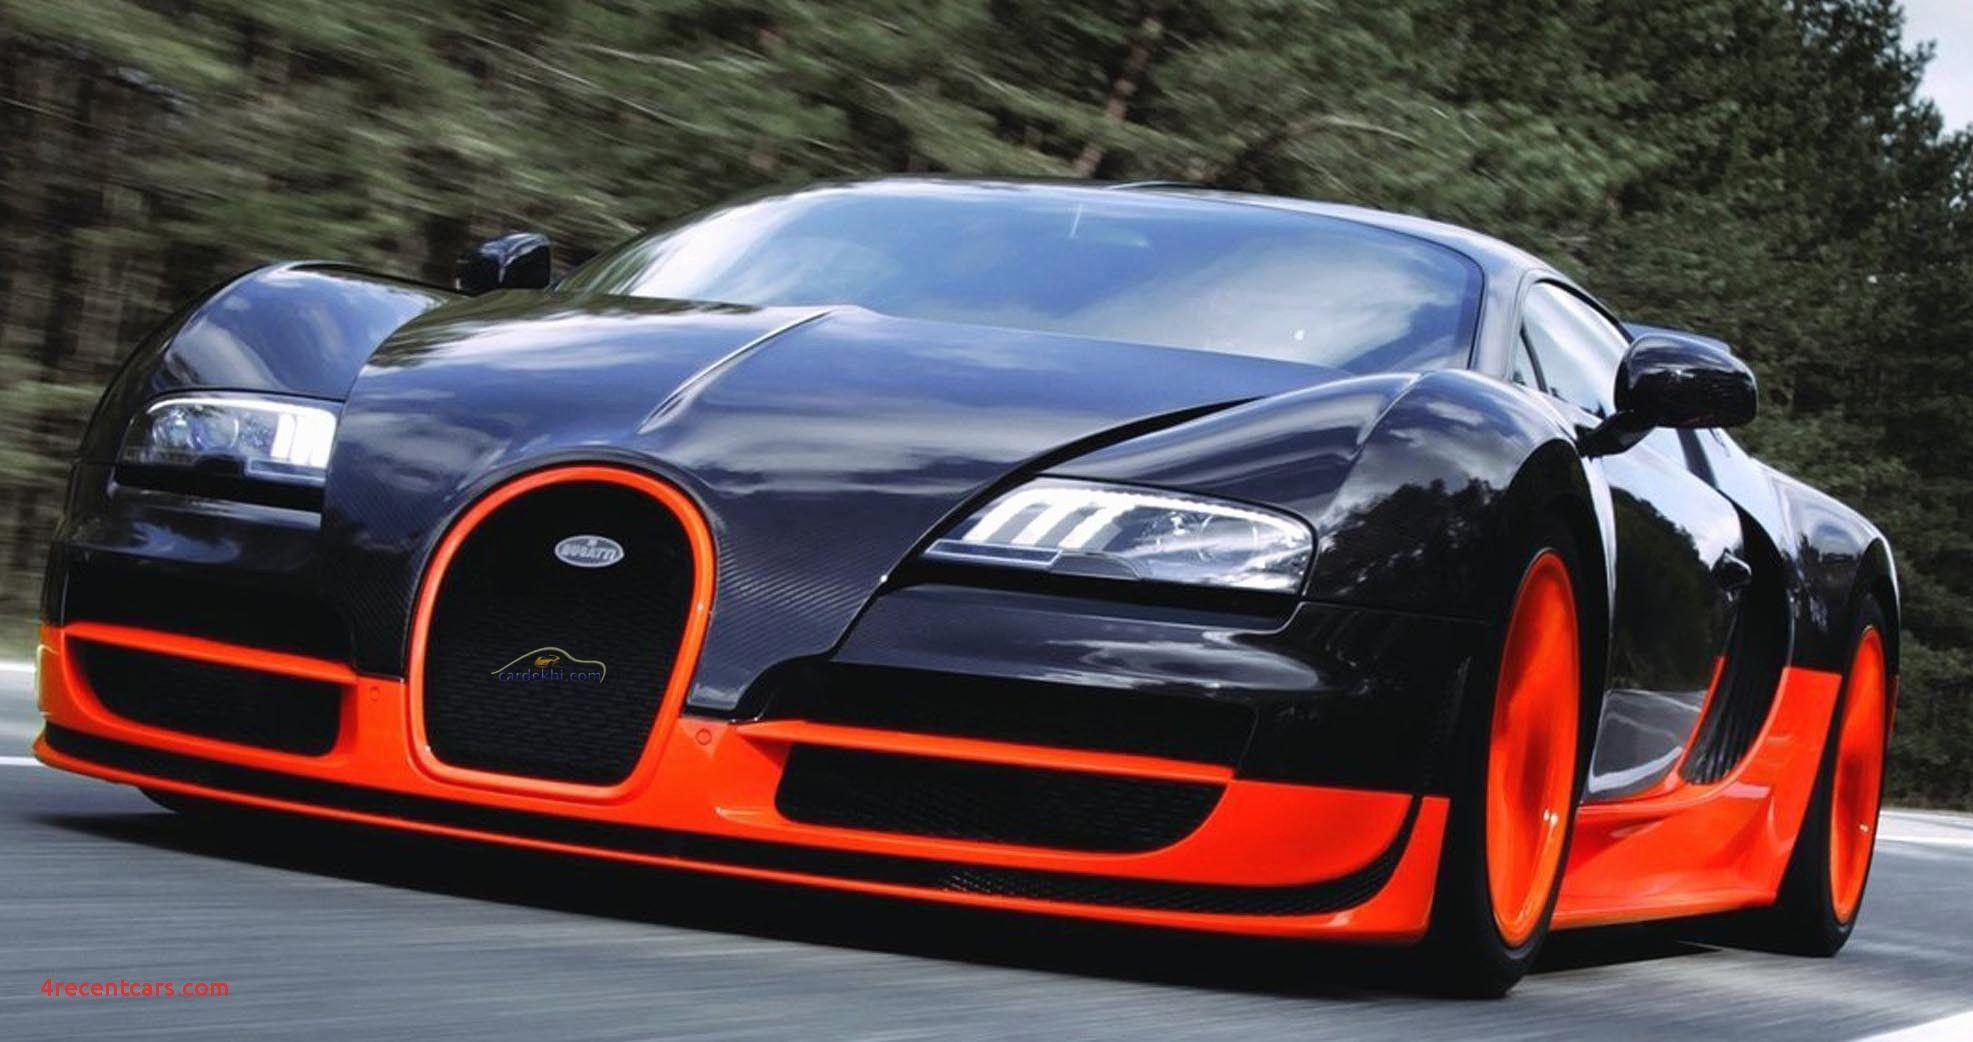 World Fastest Car Wallpaper Awesome In The